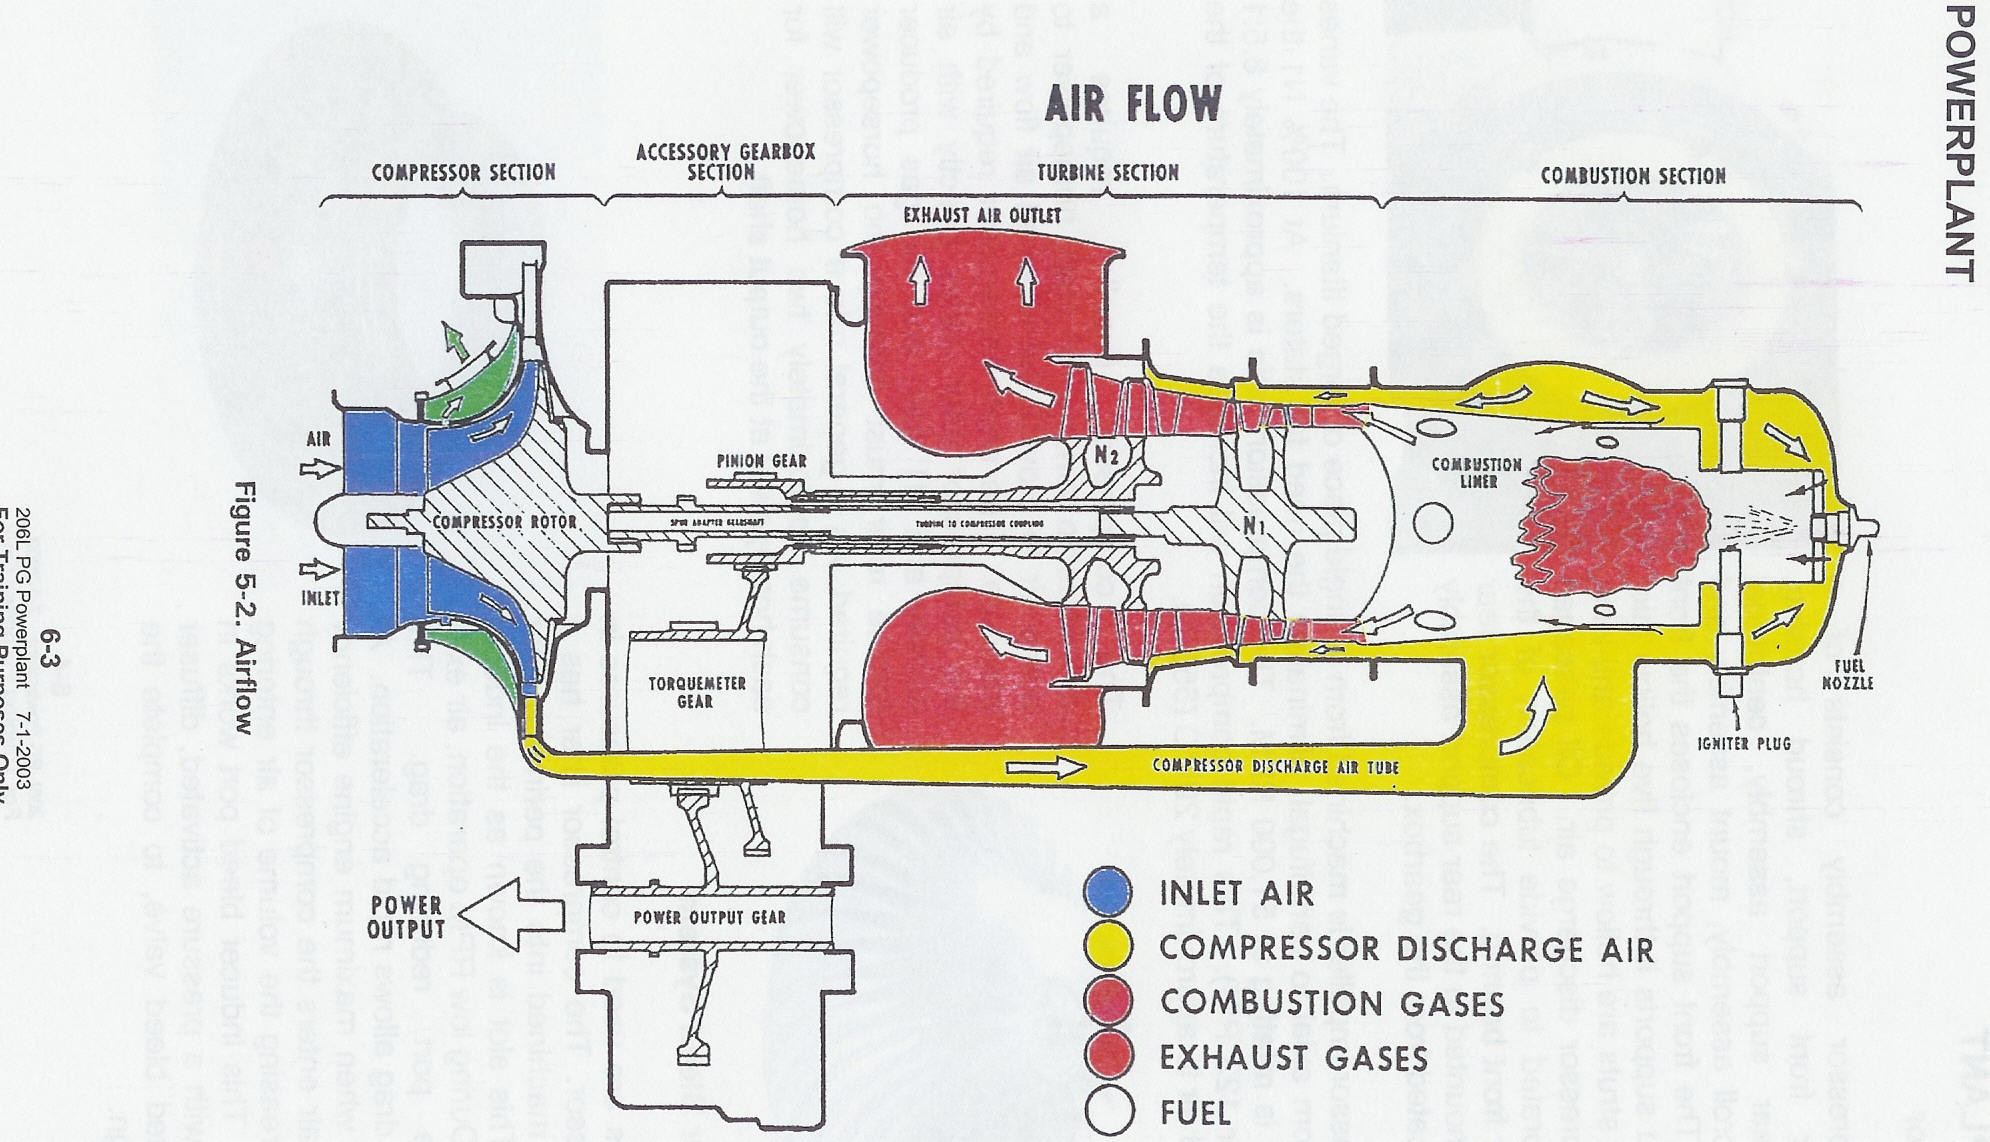 Helicopter Engine Diagram How Does A Gas Turbine Engine Work Win S Online Of Helicopter Engine Diagram